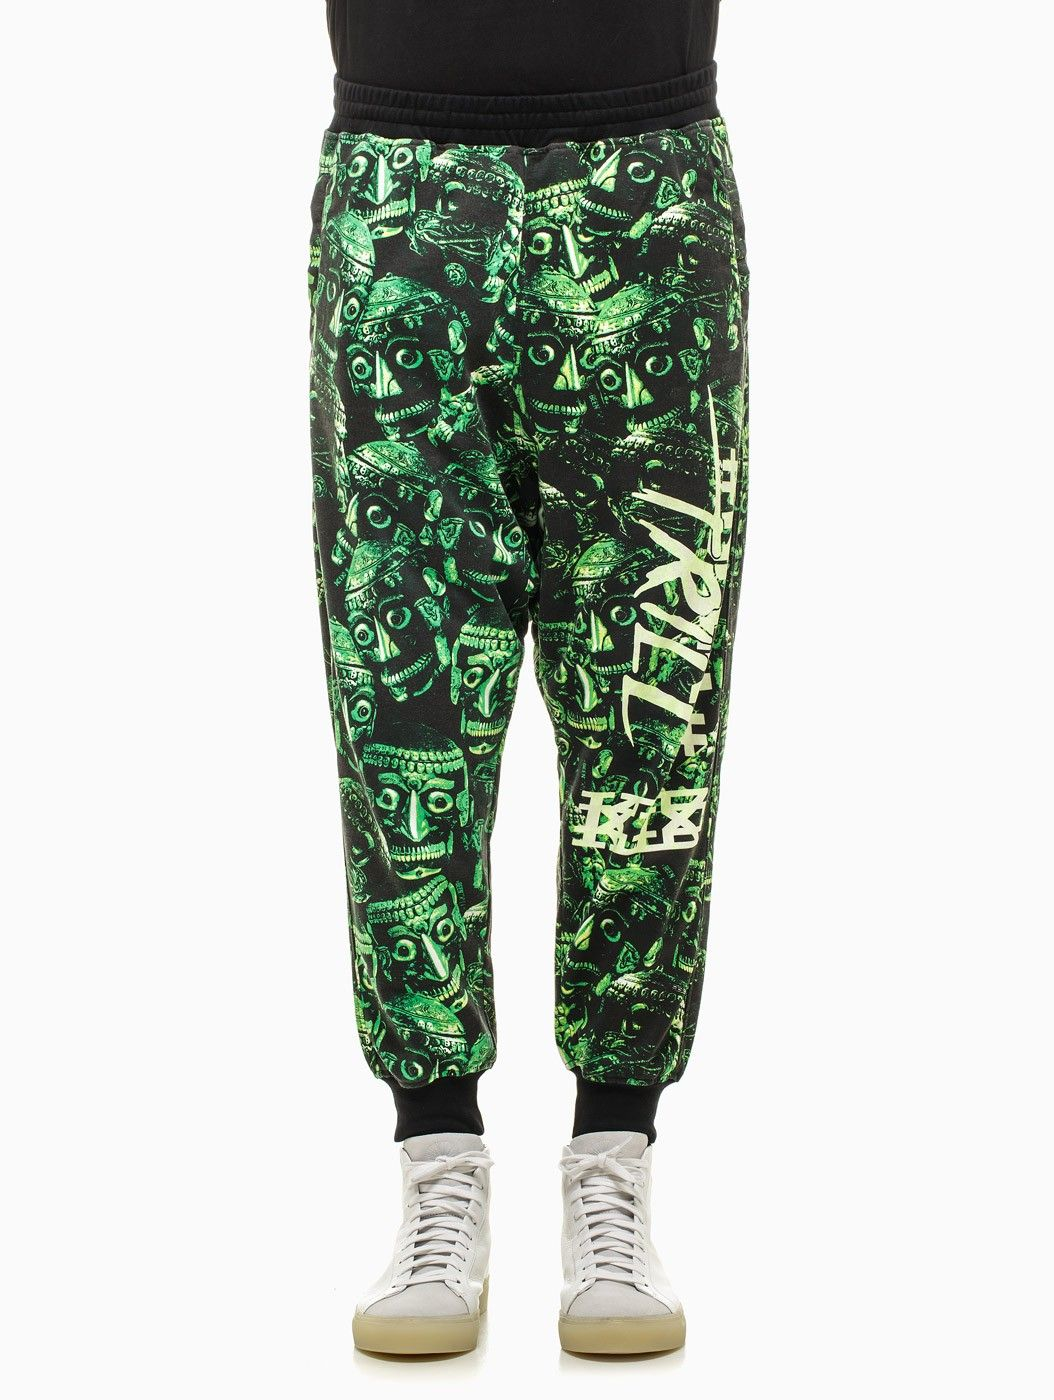 Skull printed harem trousers from the F/W2014-15 KTZ x Been Trill capsule collection in green